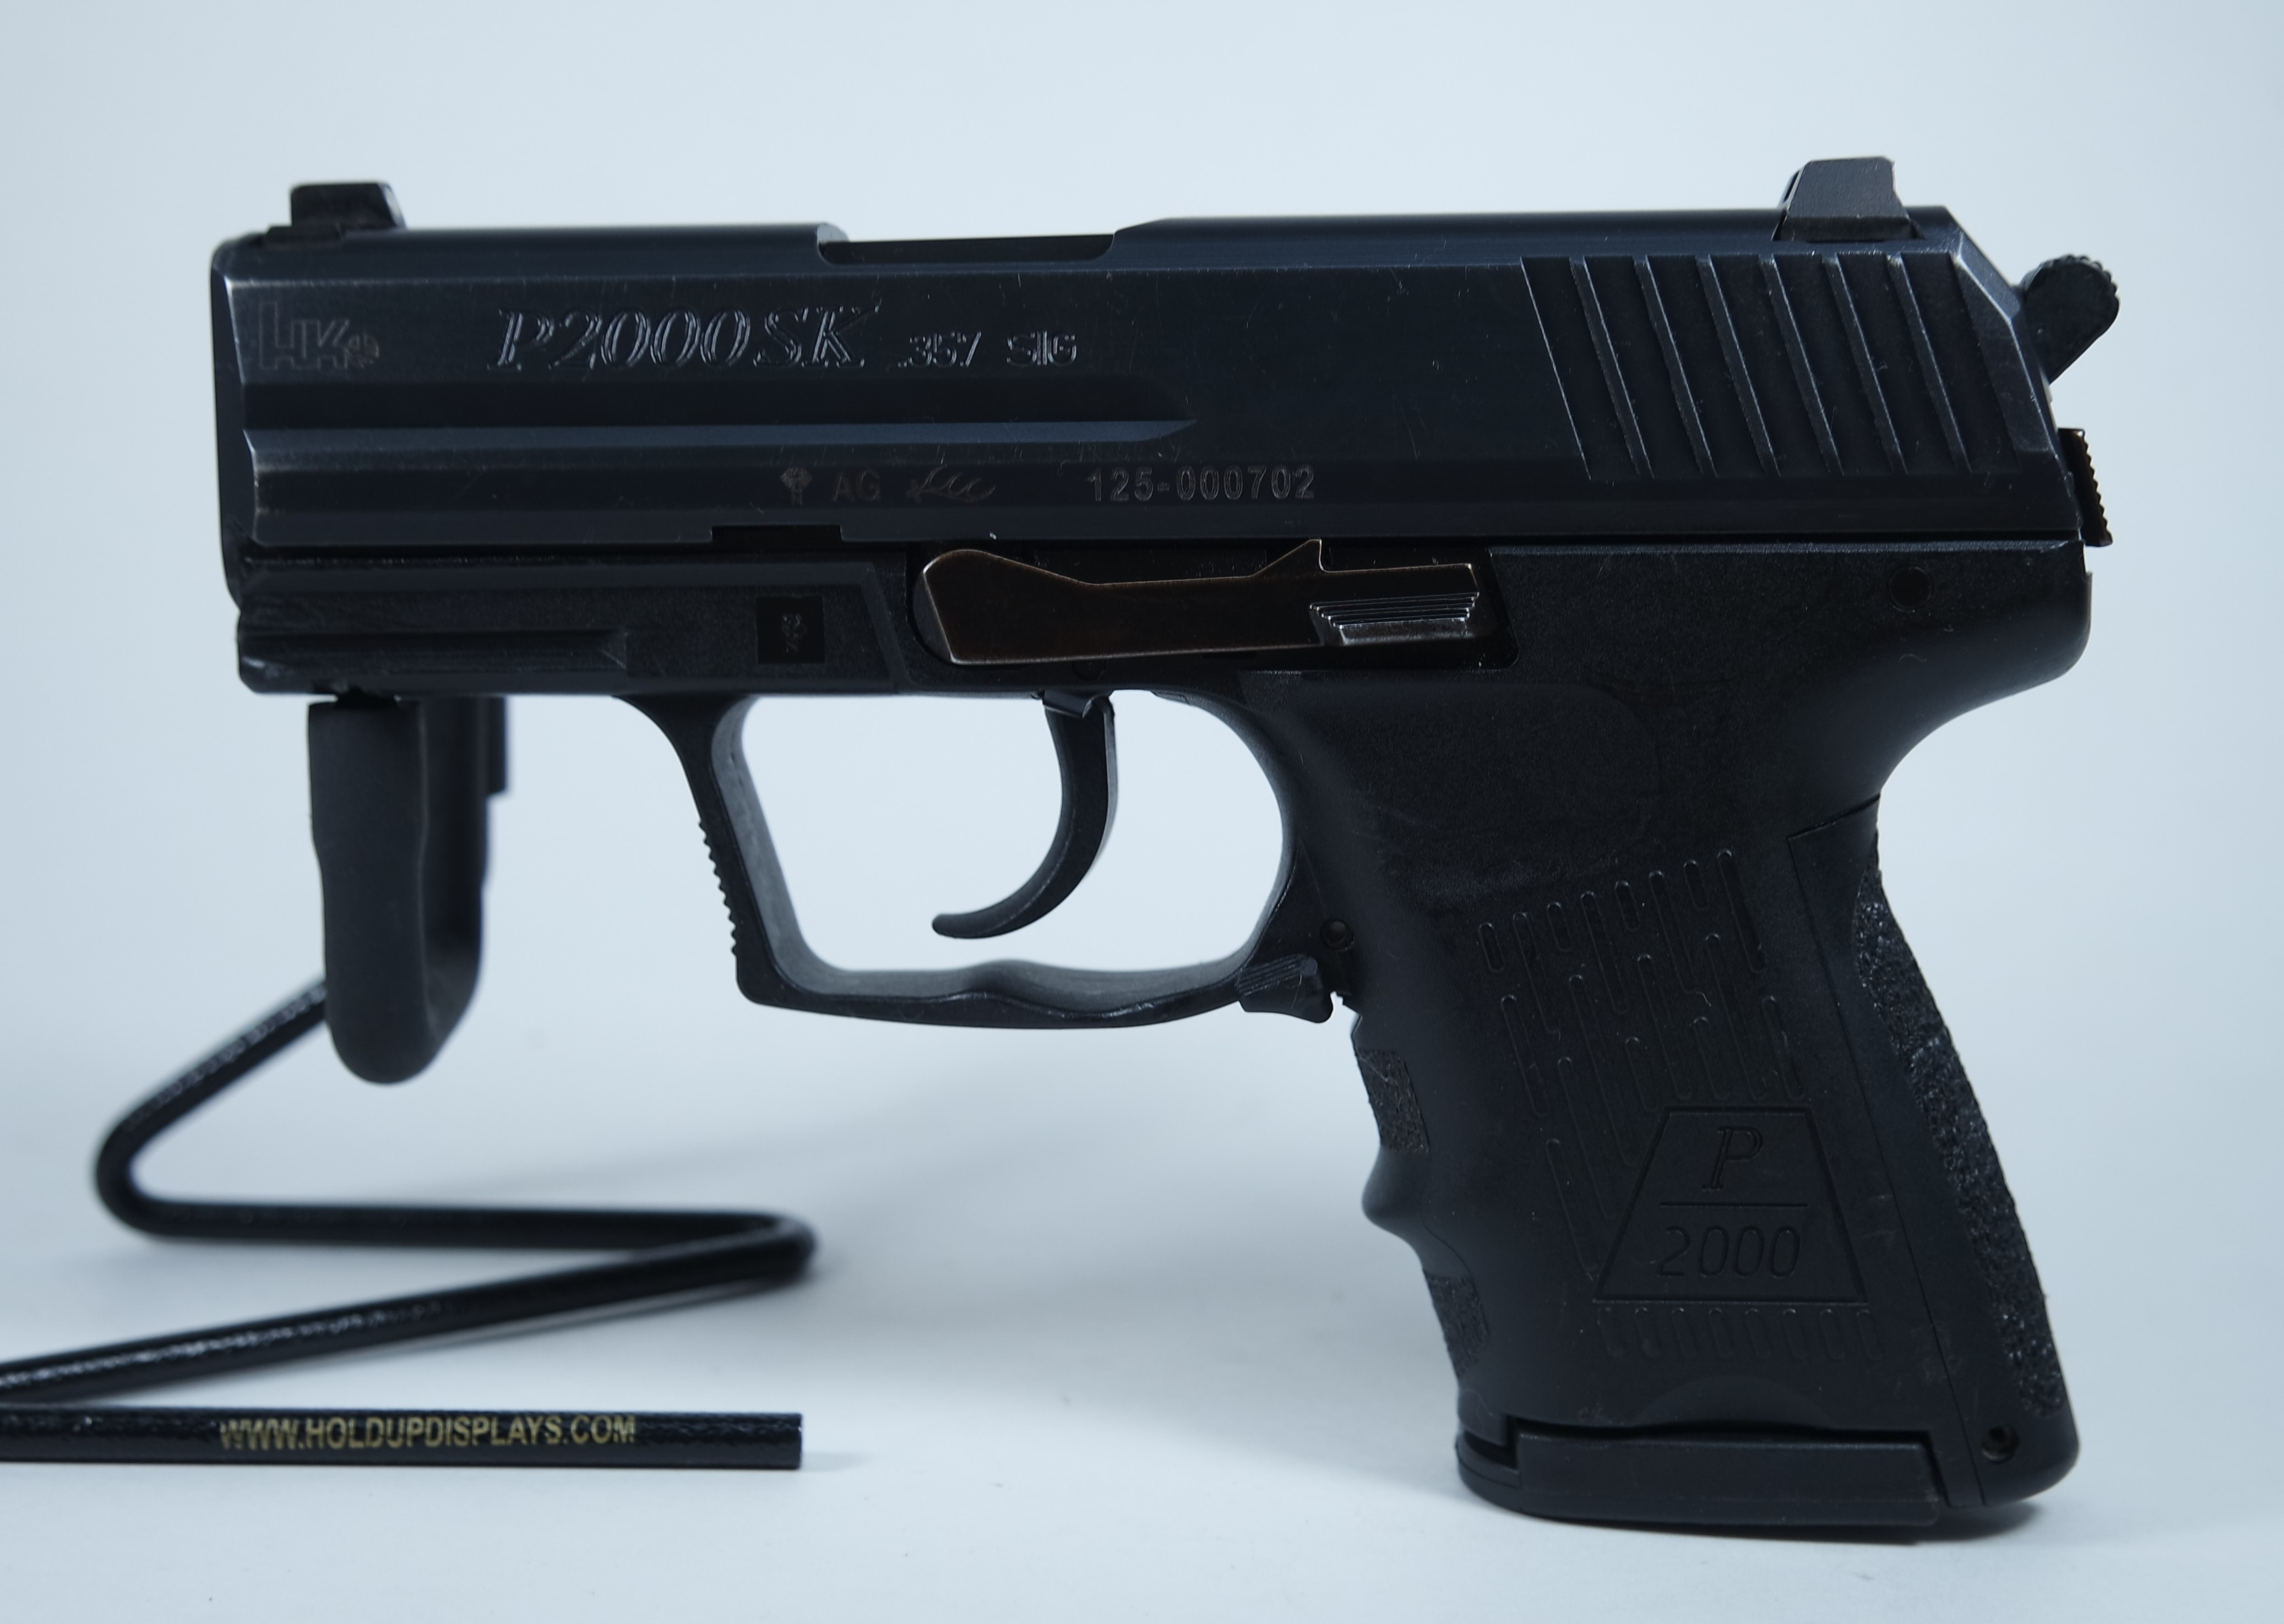 Heckler & Koch P2000SK 357sig with .40 S&W Barrel Pre-owned